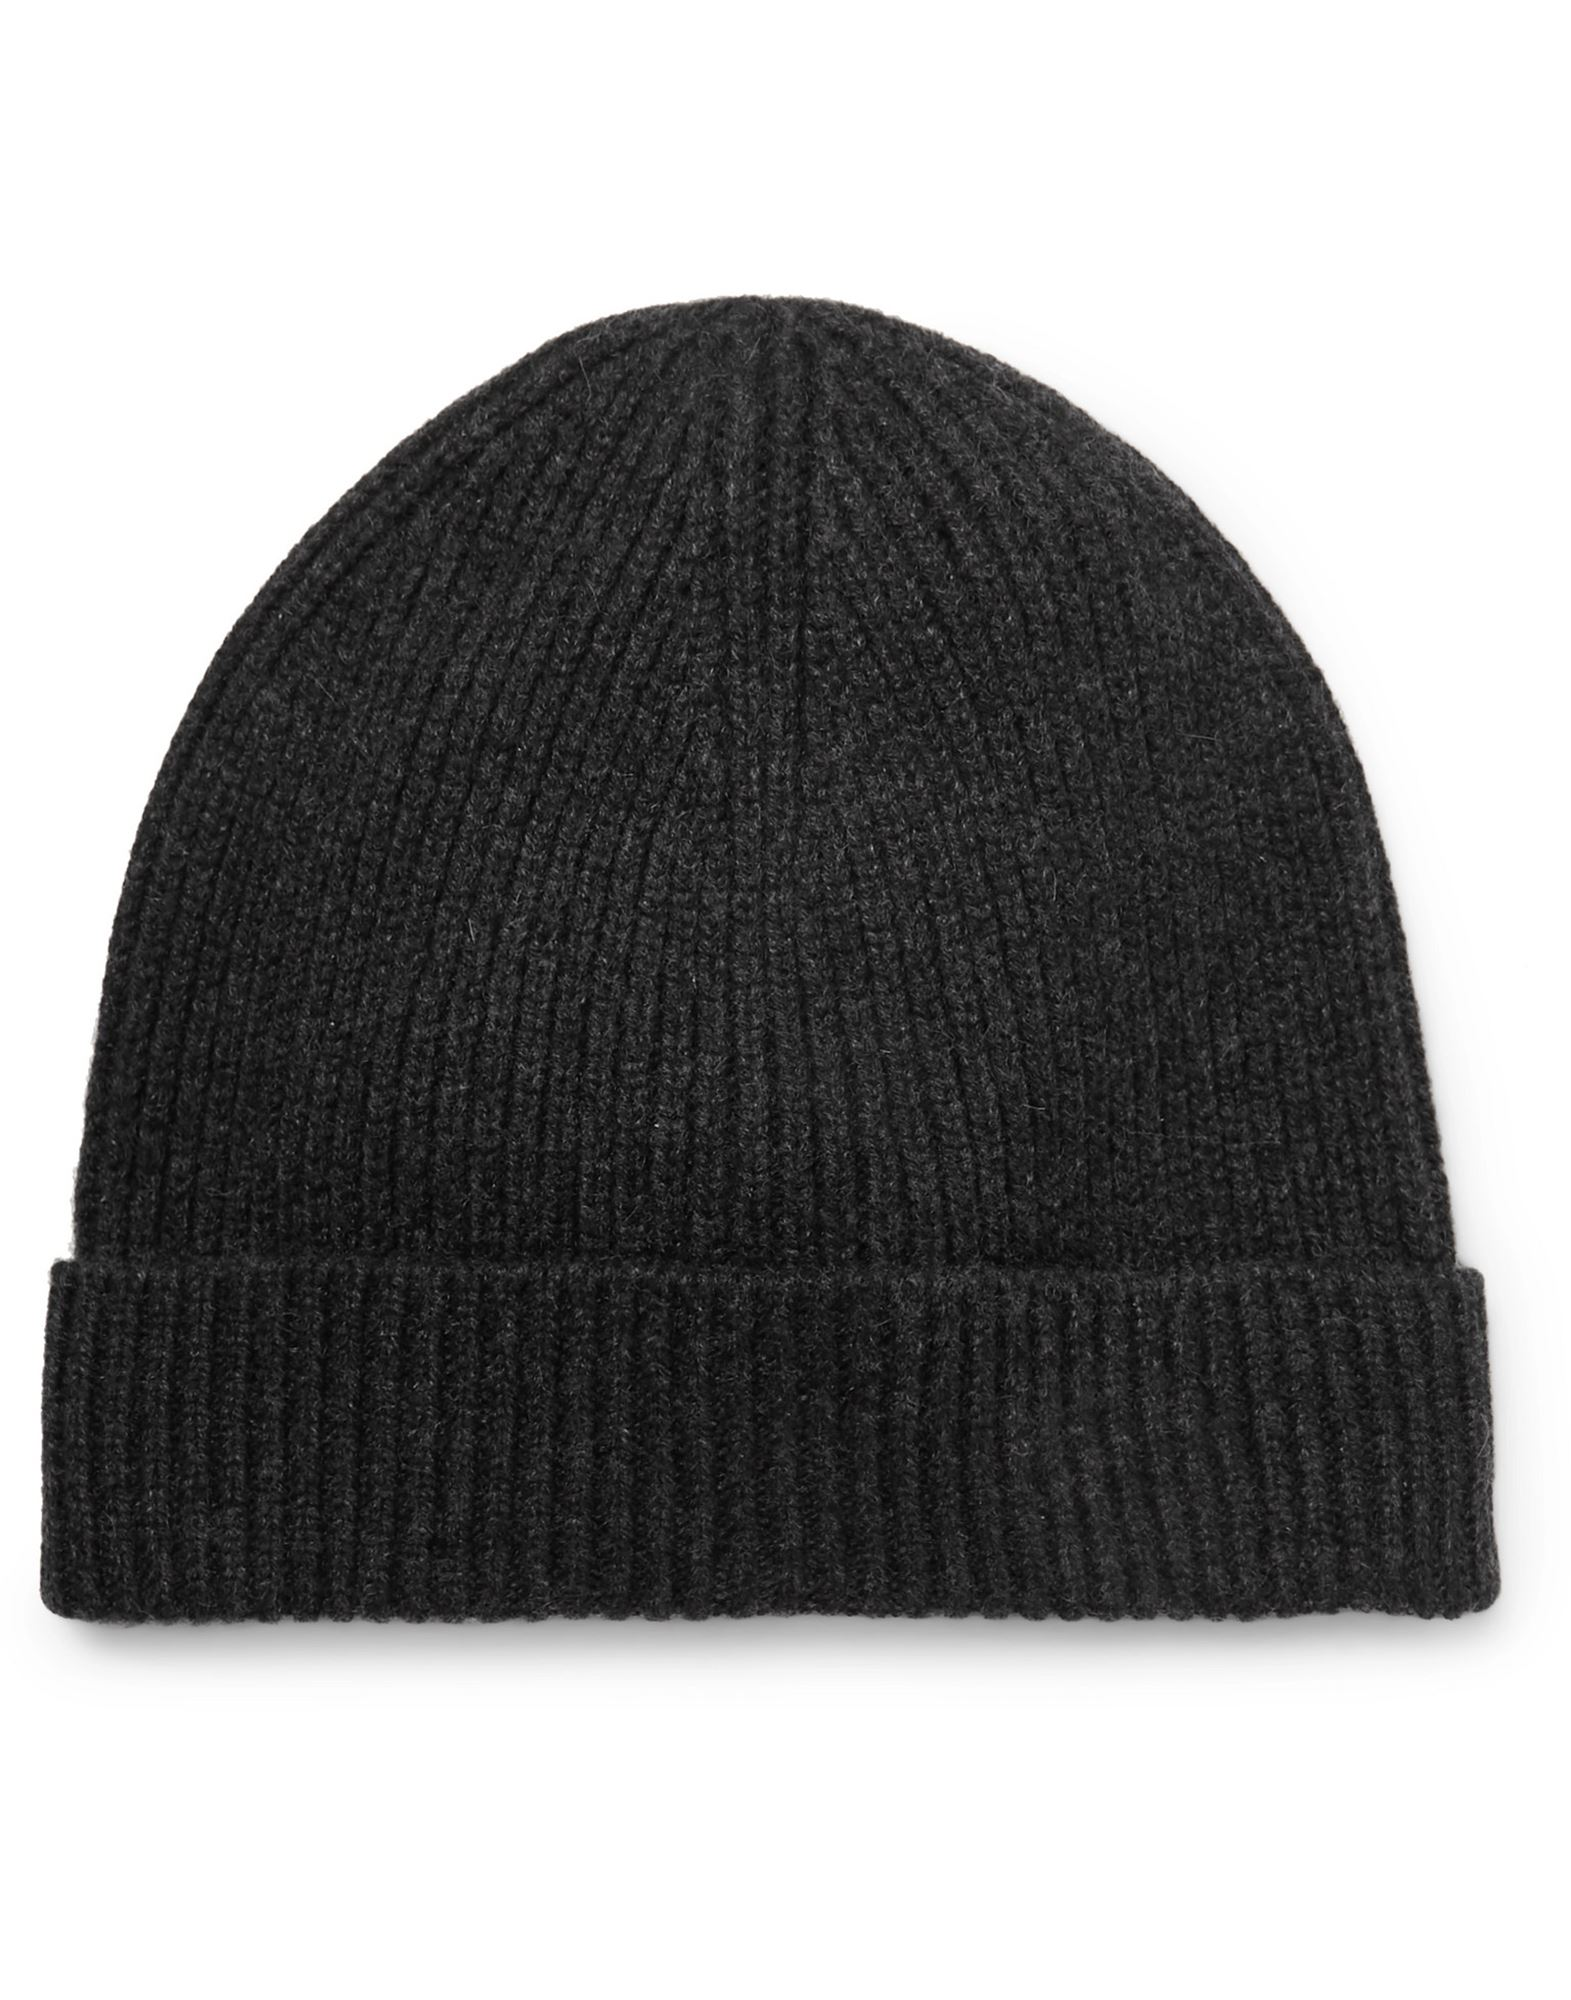 J.CREW Hats. knitted, logo, solid color, lightweight sweater. 100% Cashmere